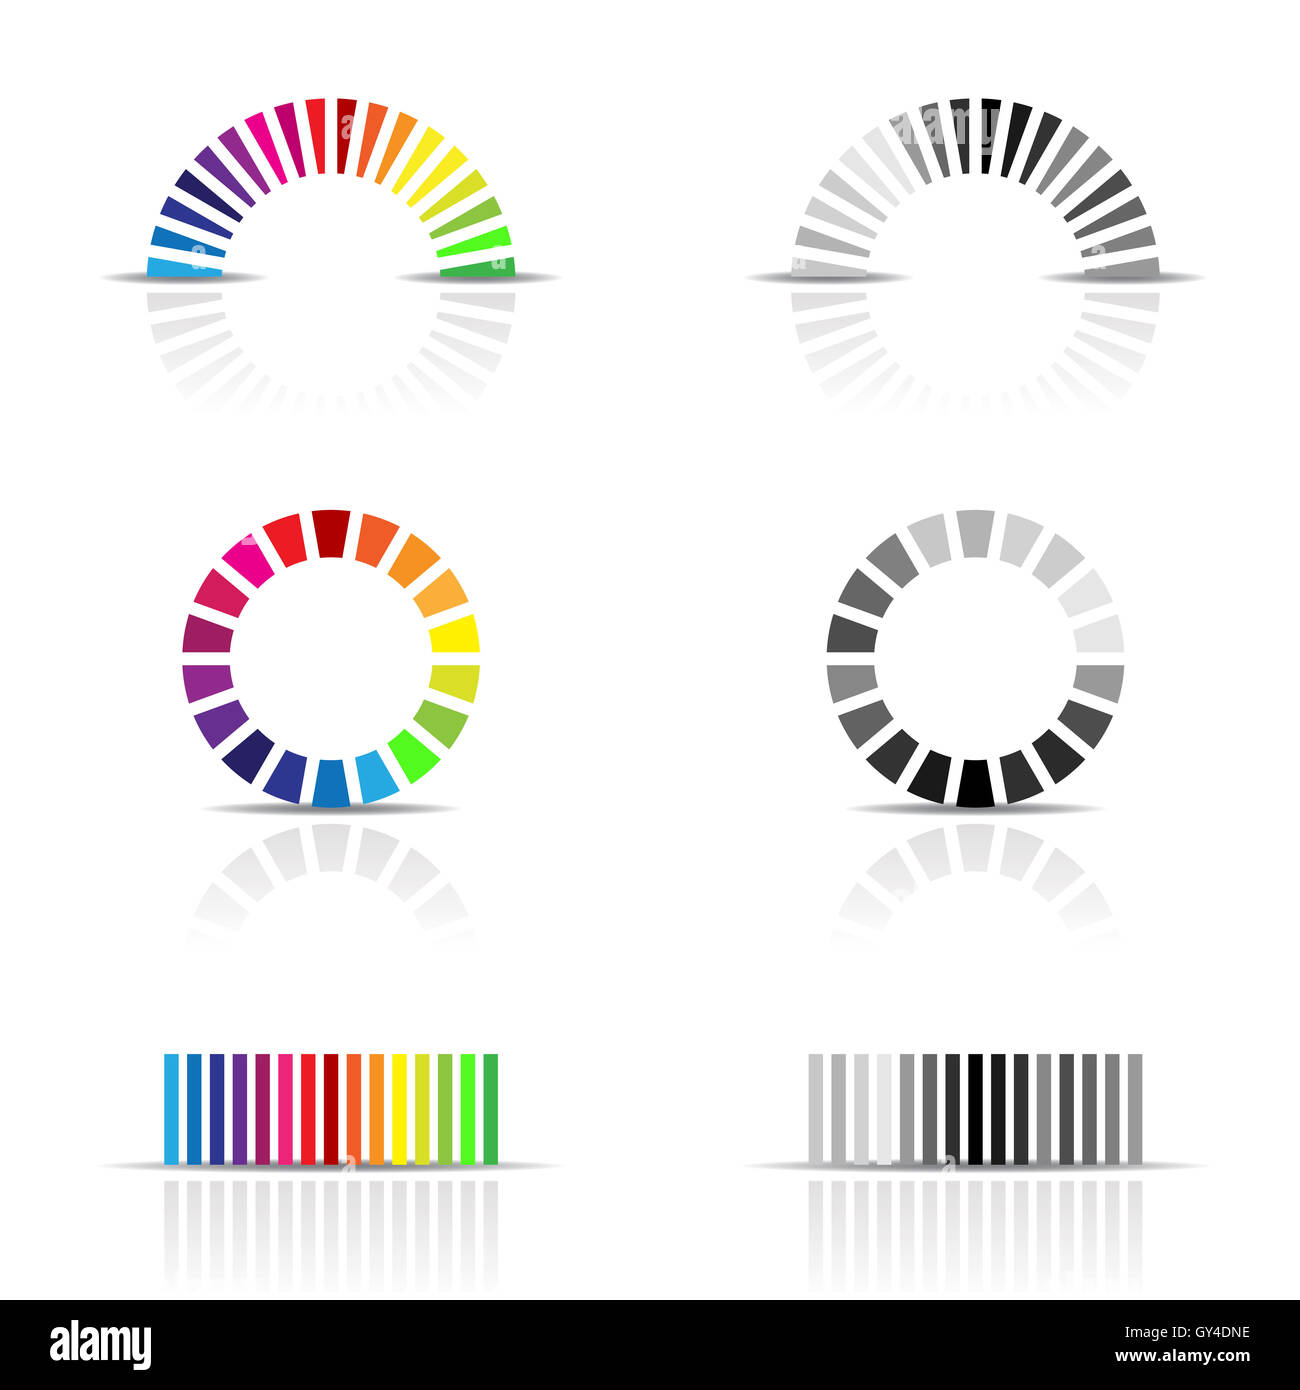 vector illustration of colour profile samples, cmyk, rgb - Stock Image